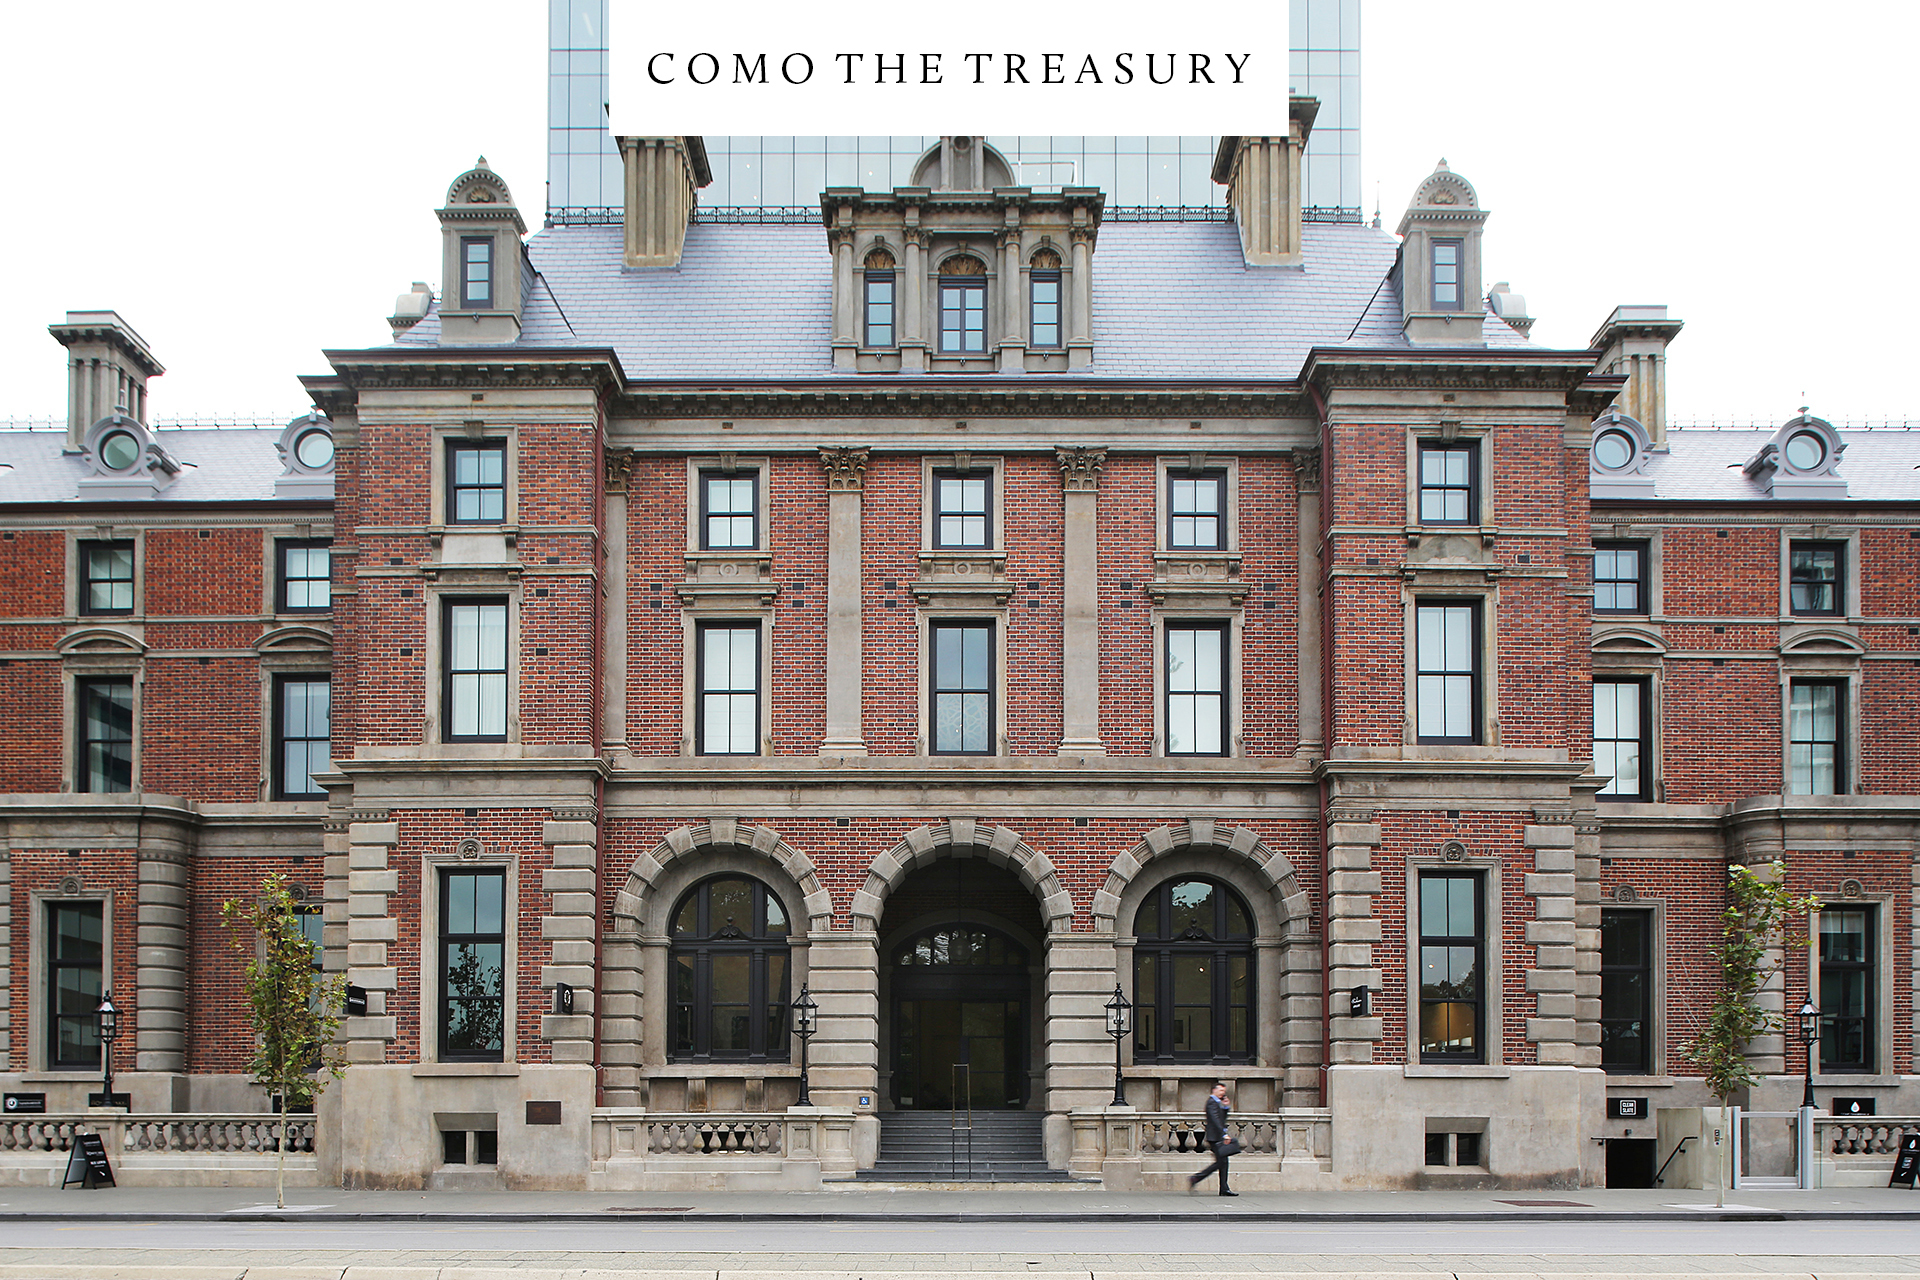 comotreasury.jpg